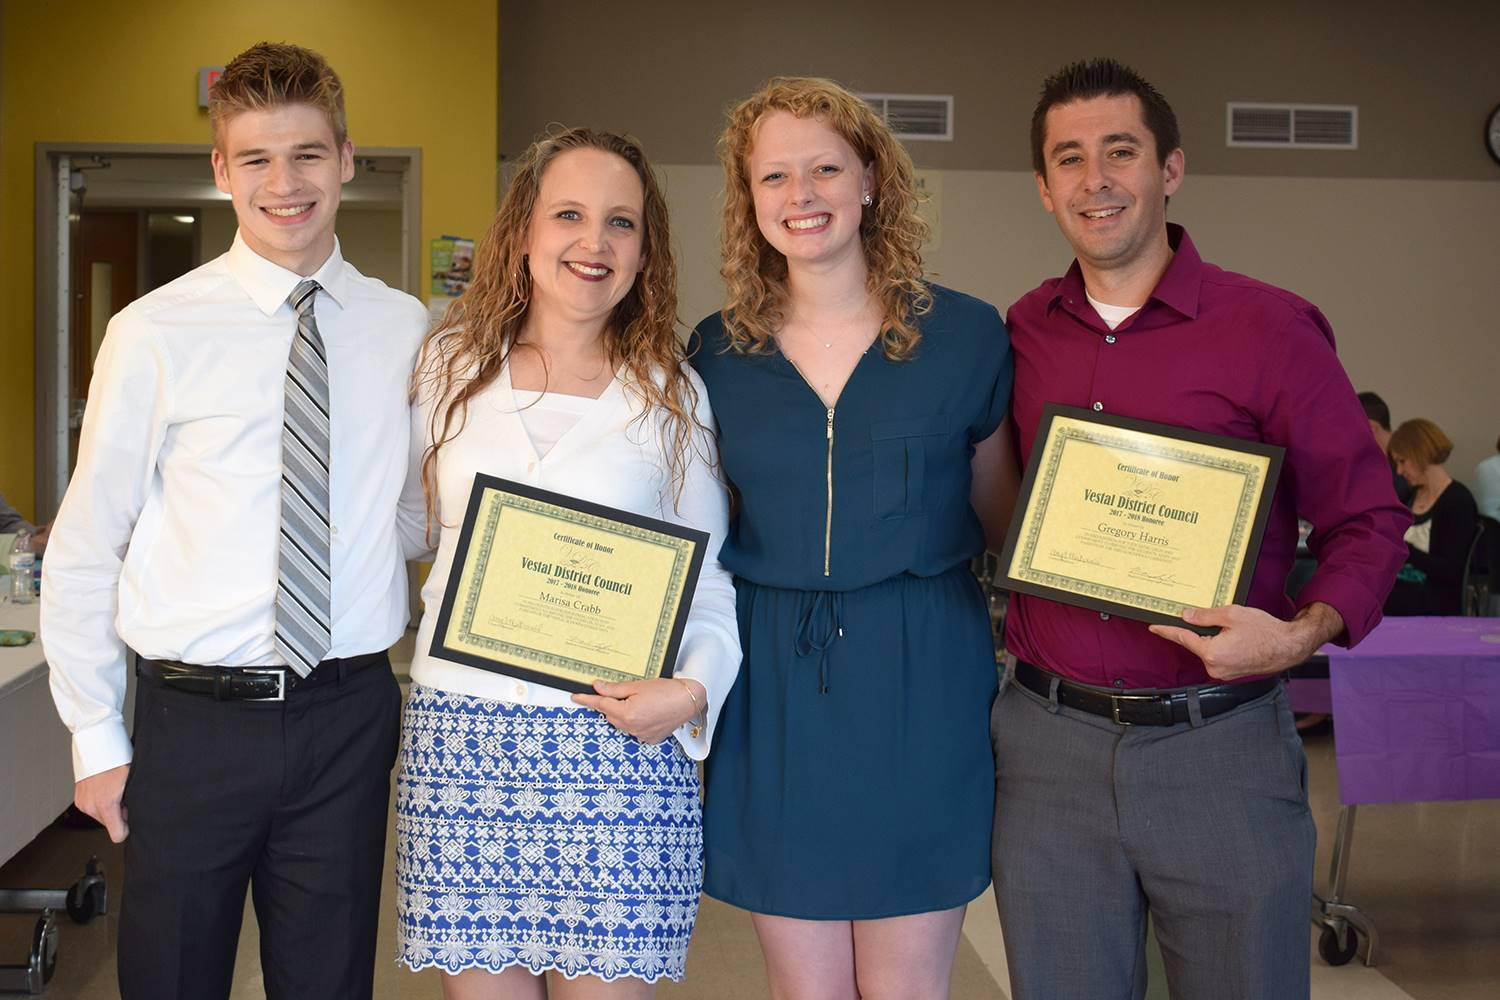 Vestal High School Student Government officers honor two music teachers as their honorees